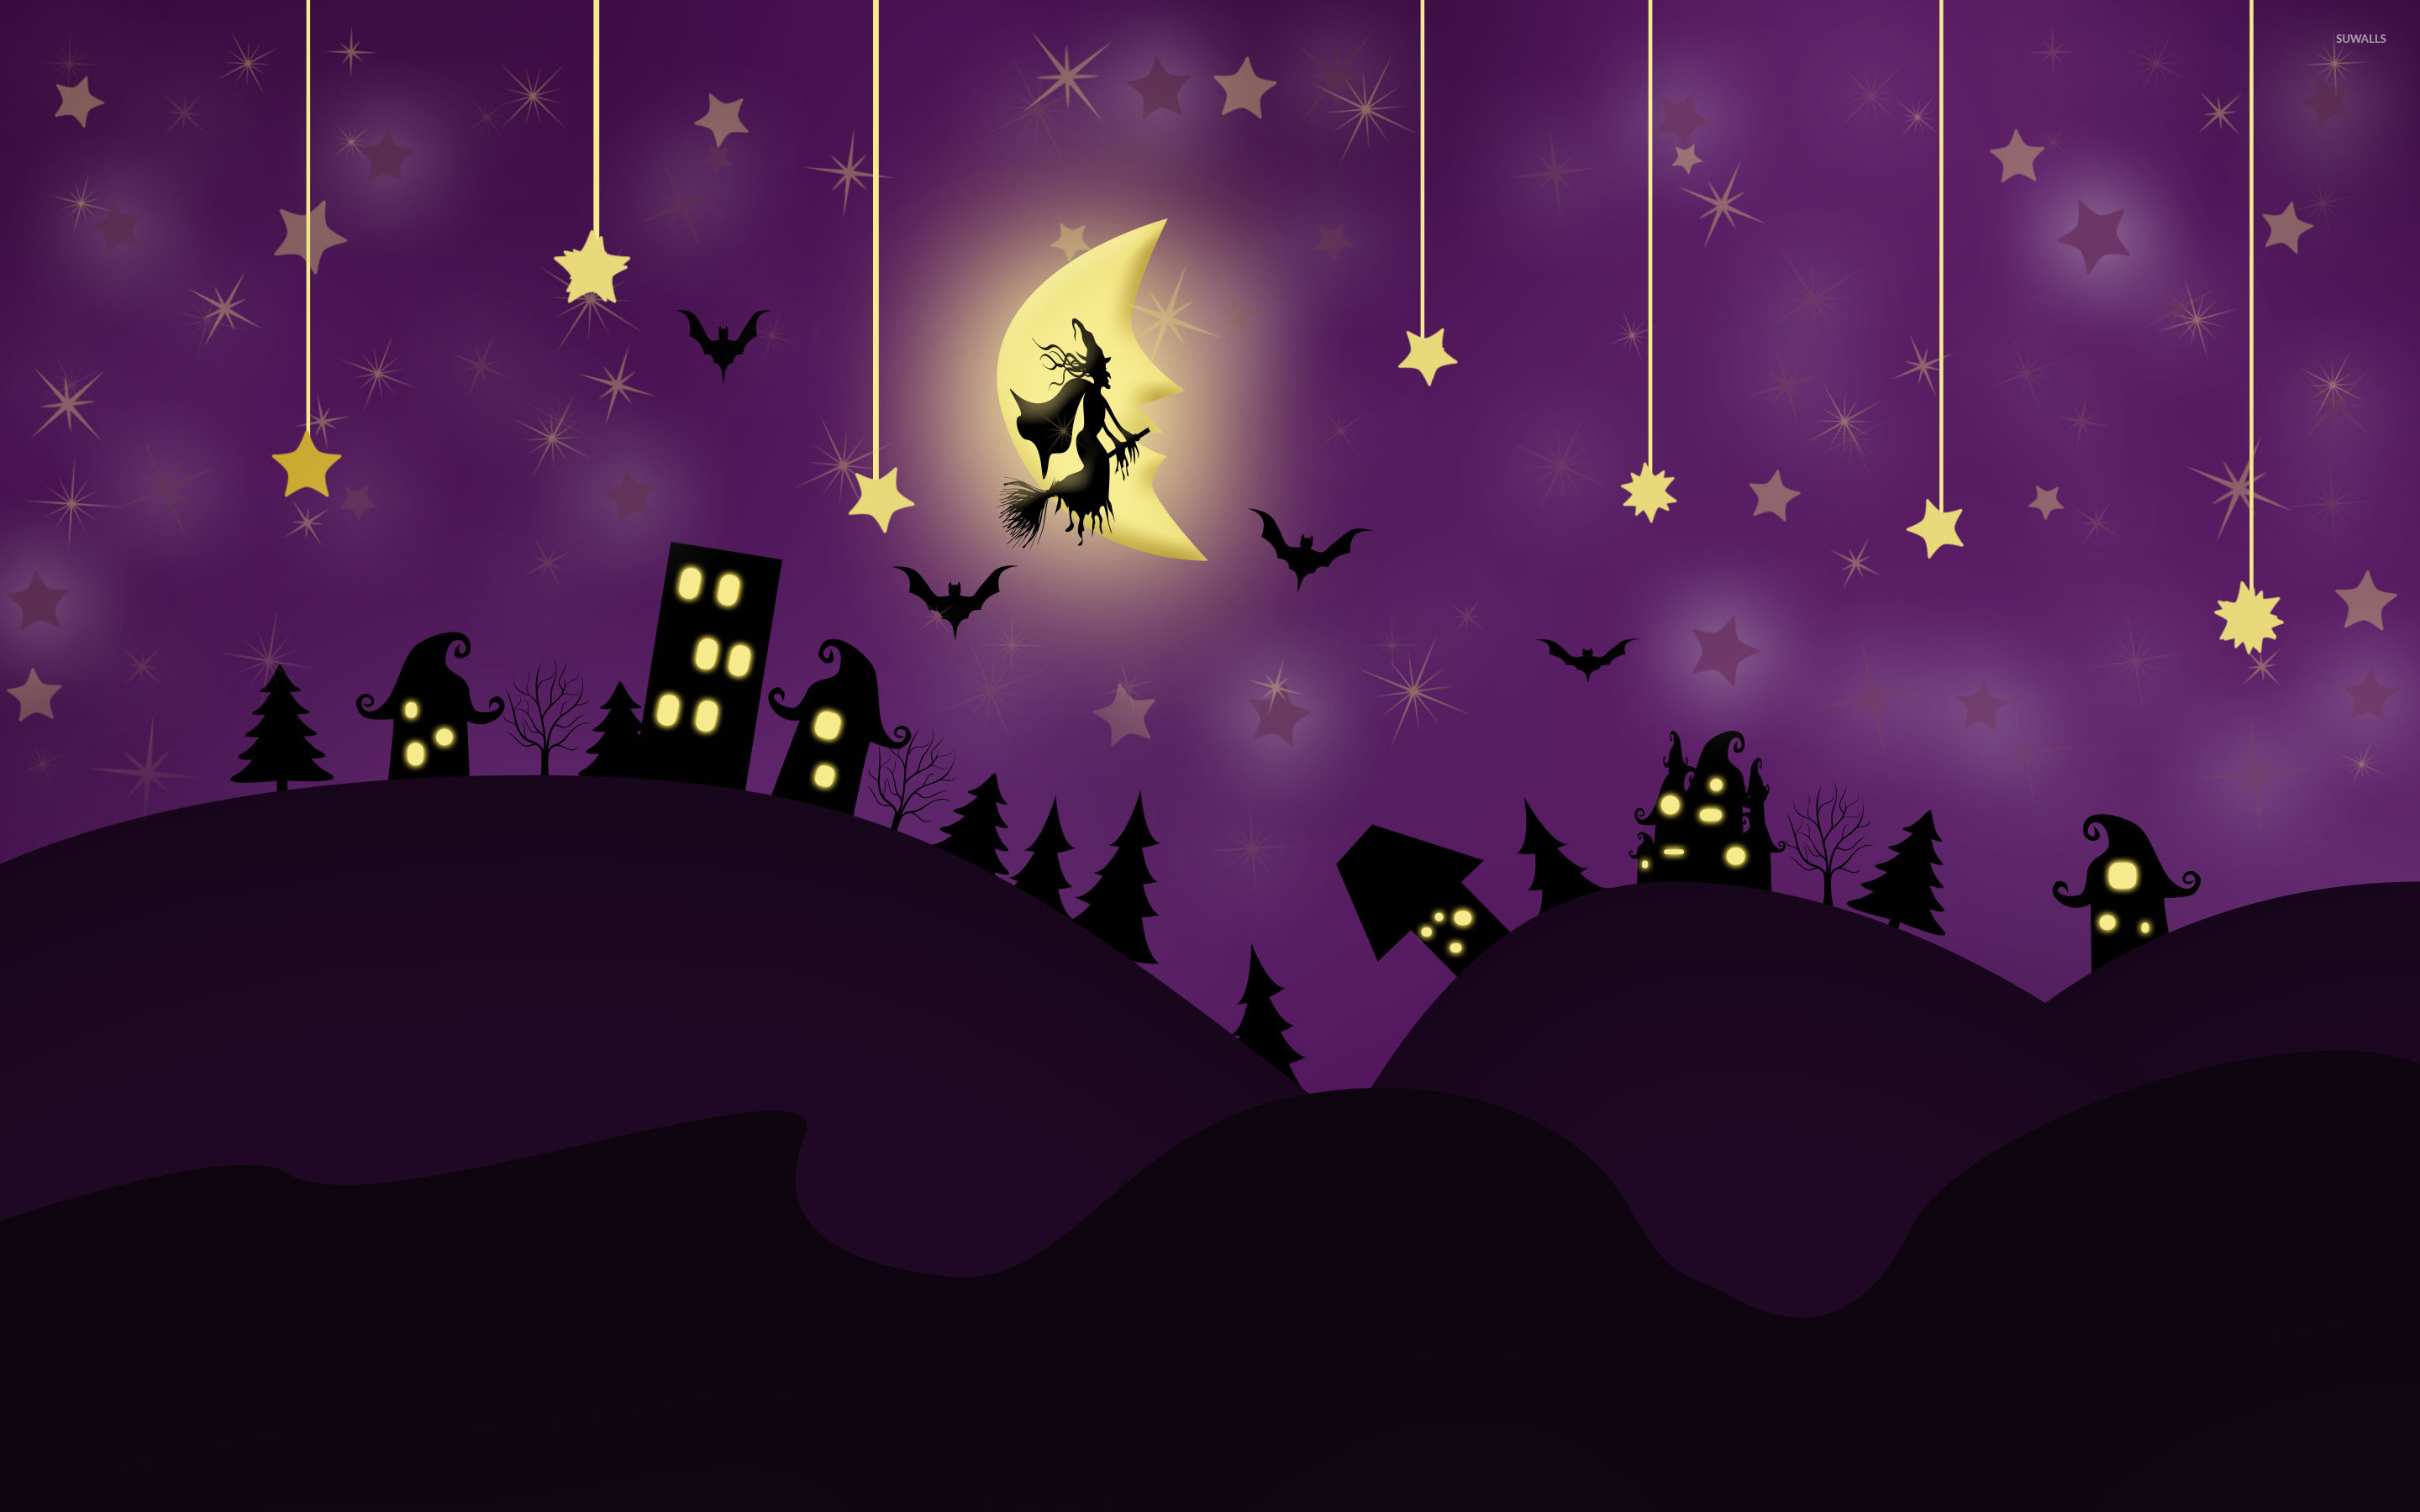 Cute Girly Skull Wallpapers Halloween Night Wallpaper Holiday Wallpapers 24304